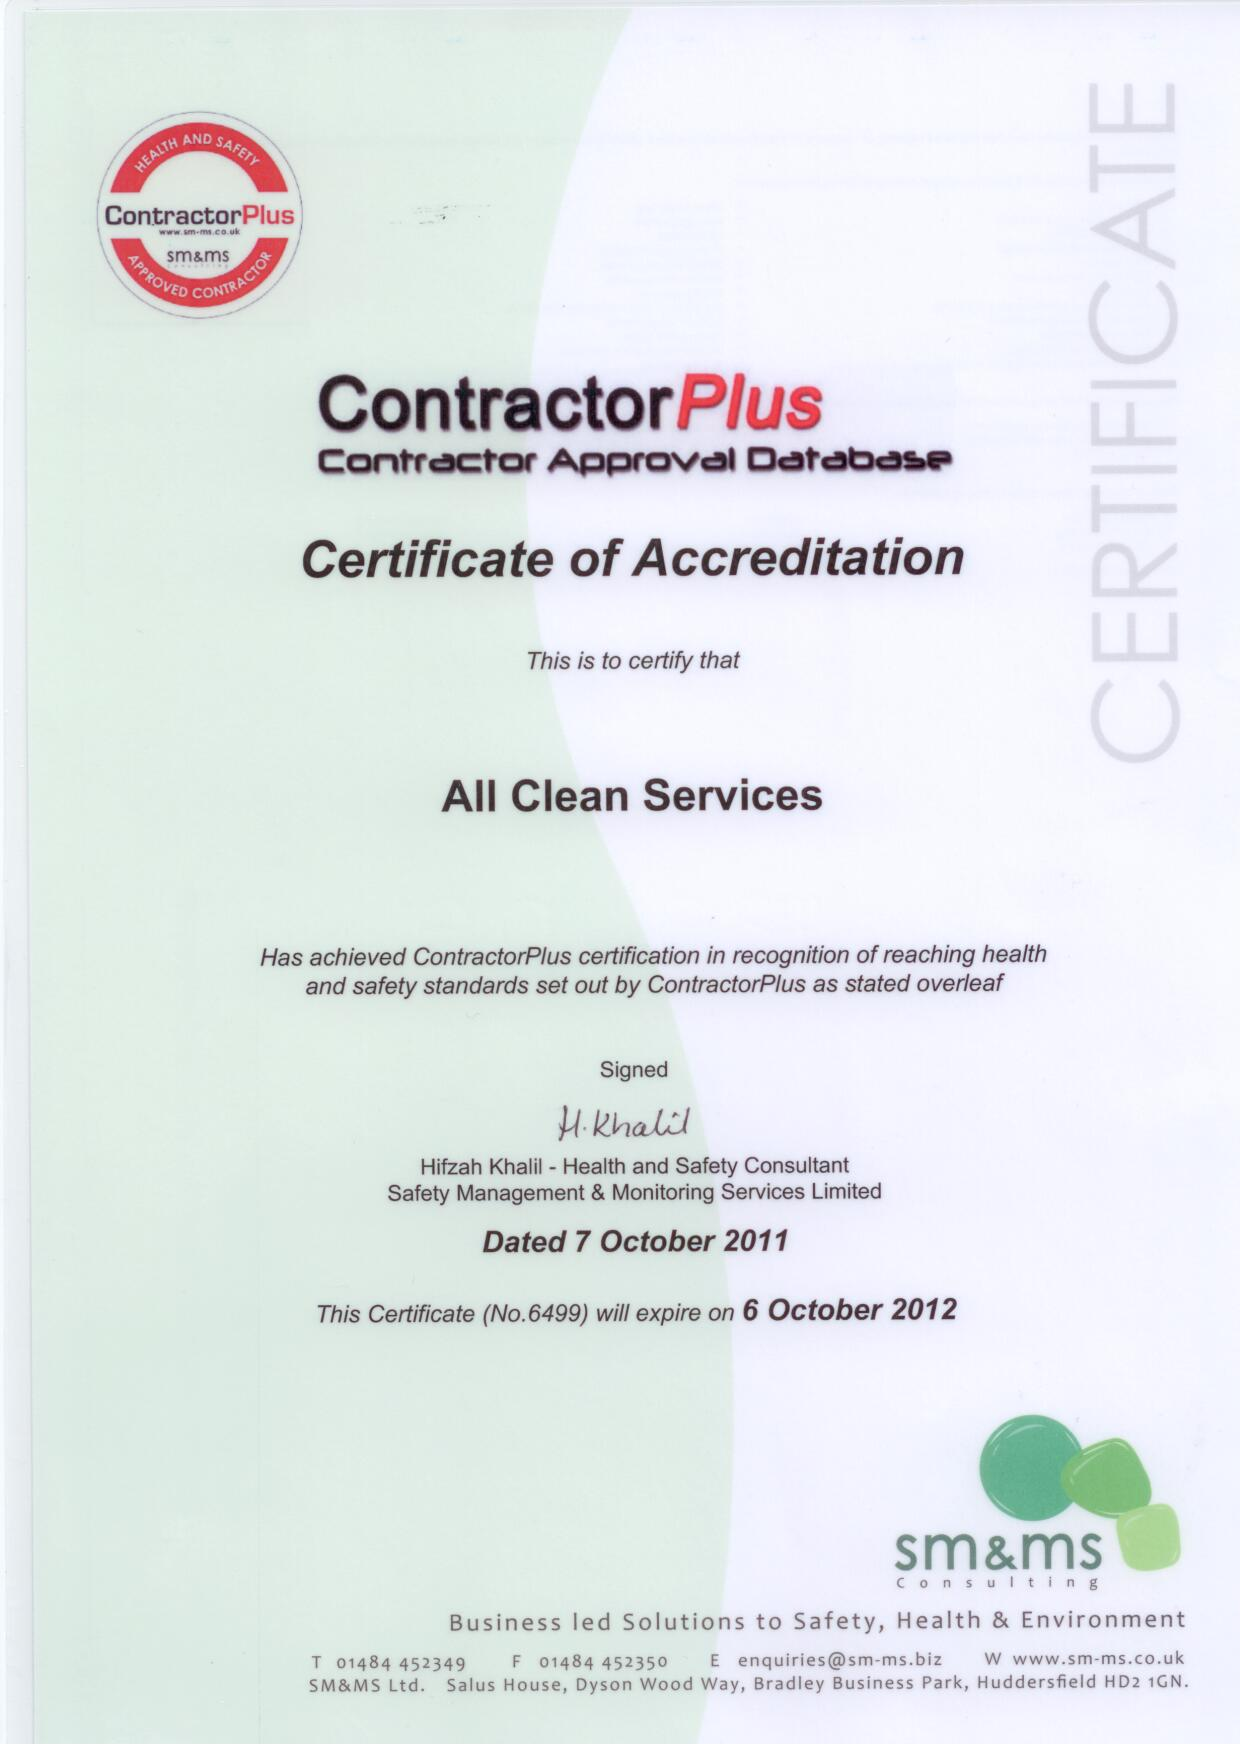 contractorplus-certificate